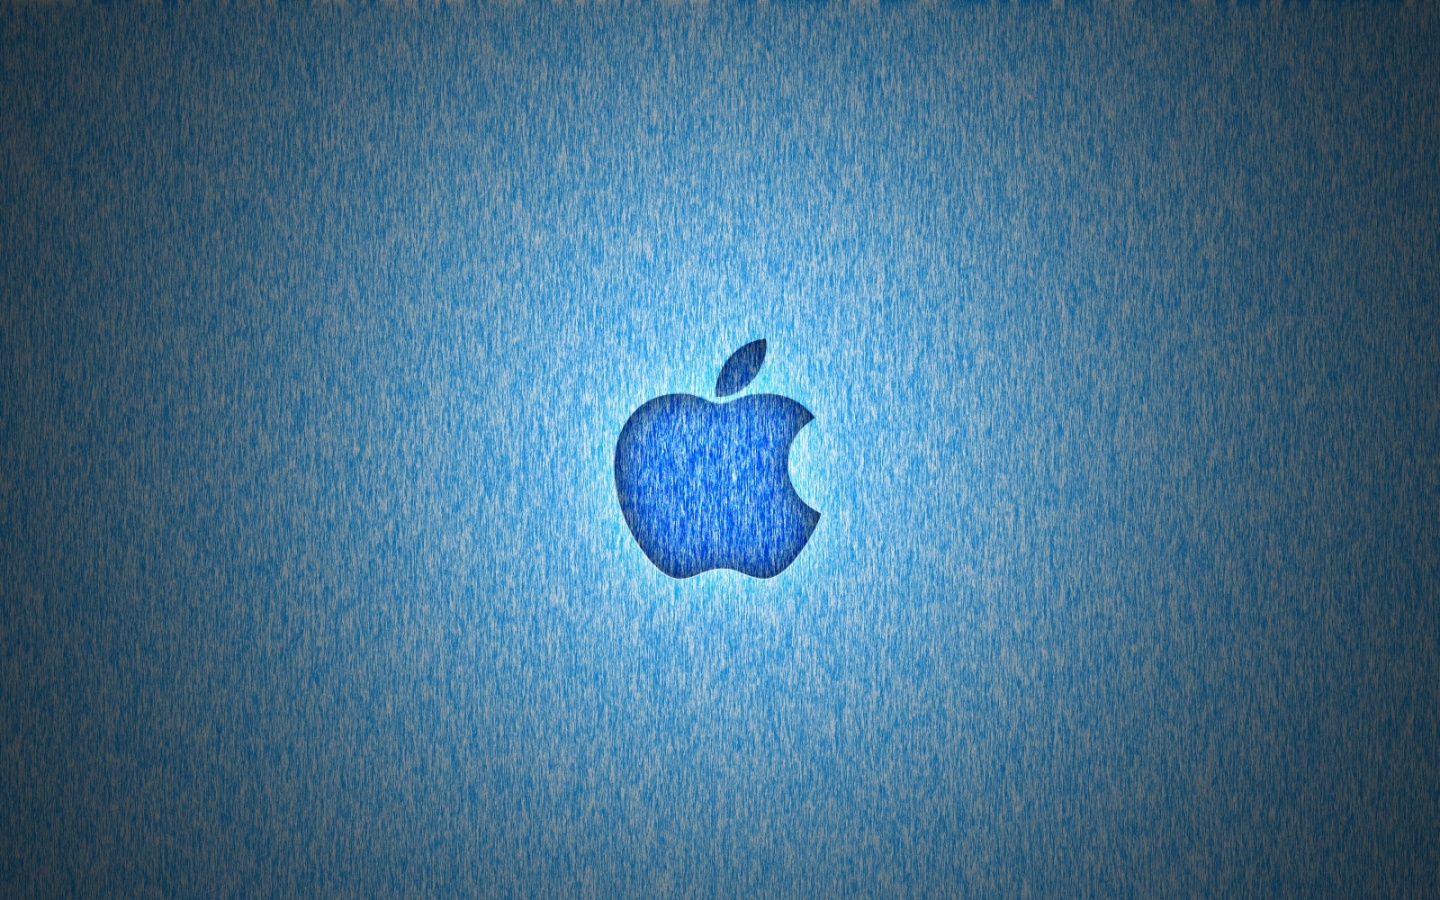 http://4.bp.blogspot.com/-T45DkfgVGvg/UD3RfotoQHI/AAAAAAAAAQ0/vONFKNkxgFI/s1600/MAC+os+X+lion+sea+blue+wallpaper+with+apple+logo.jpg